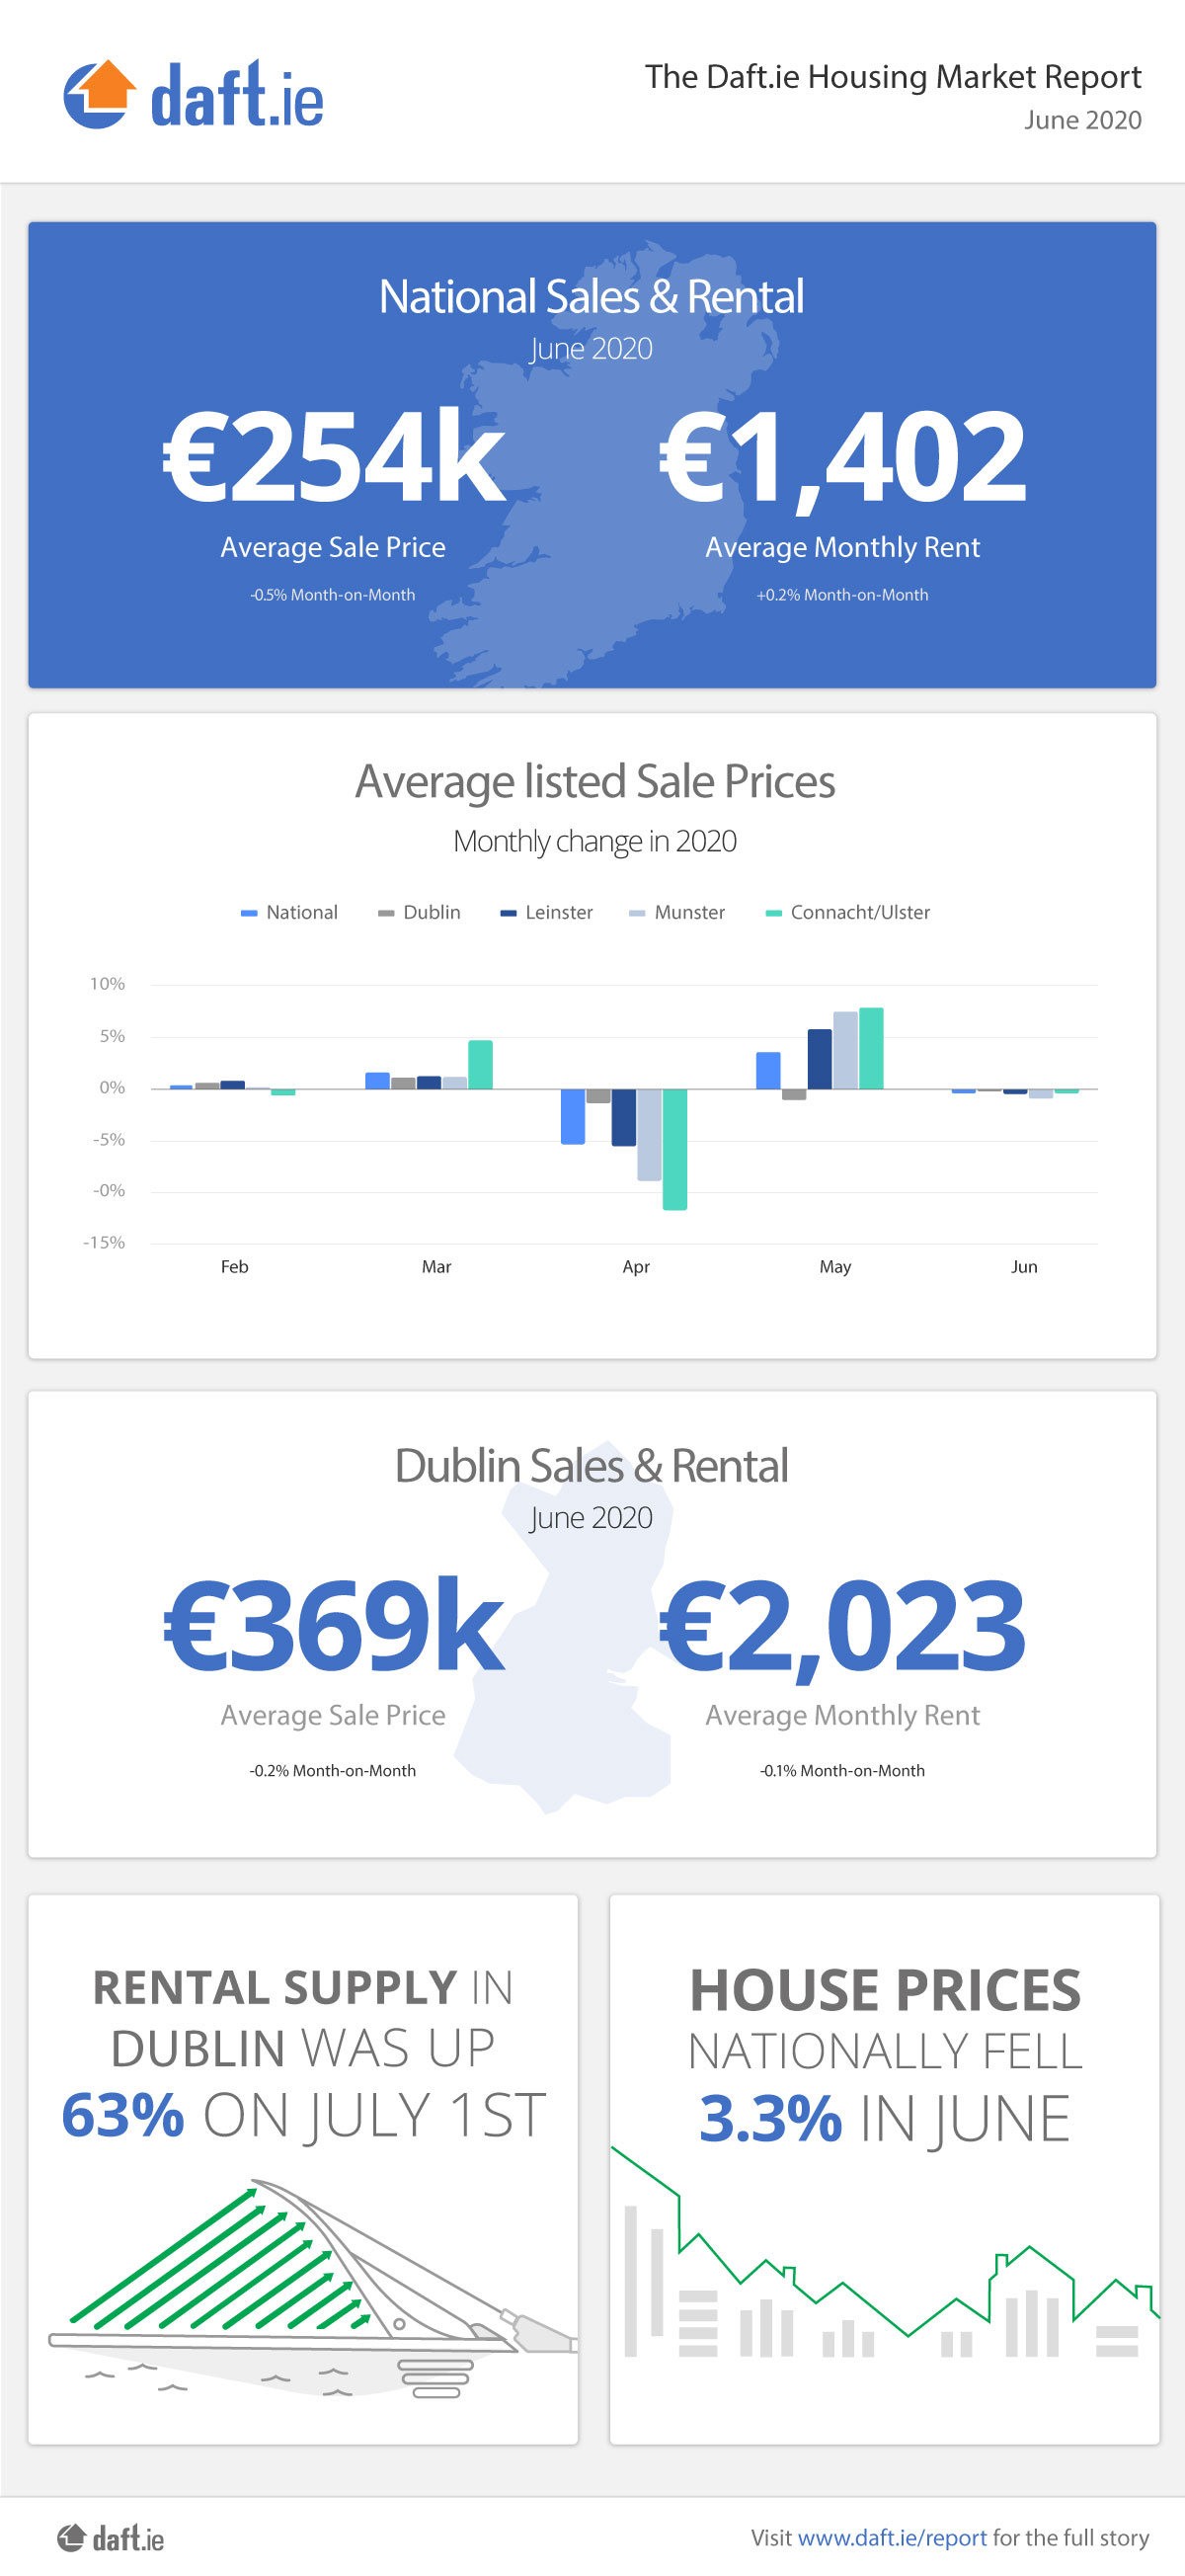 daft.ie-Infographic-June-2020.jpg